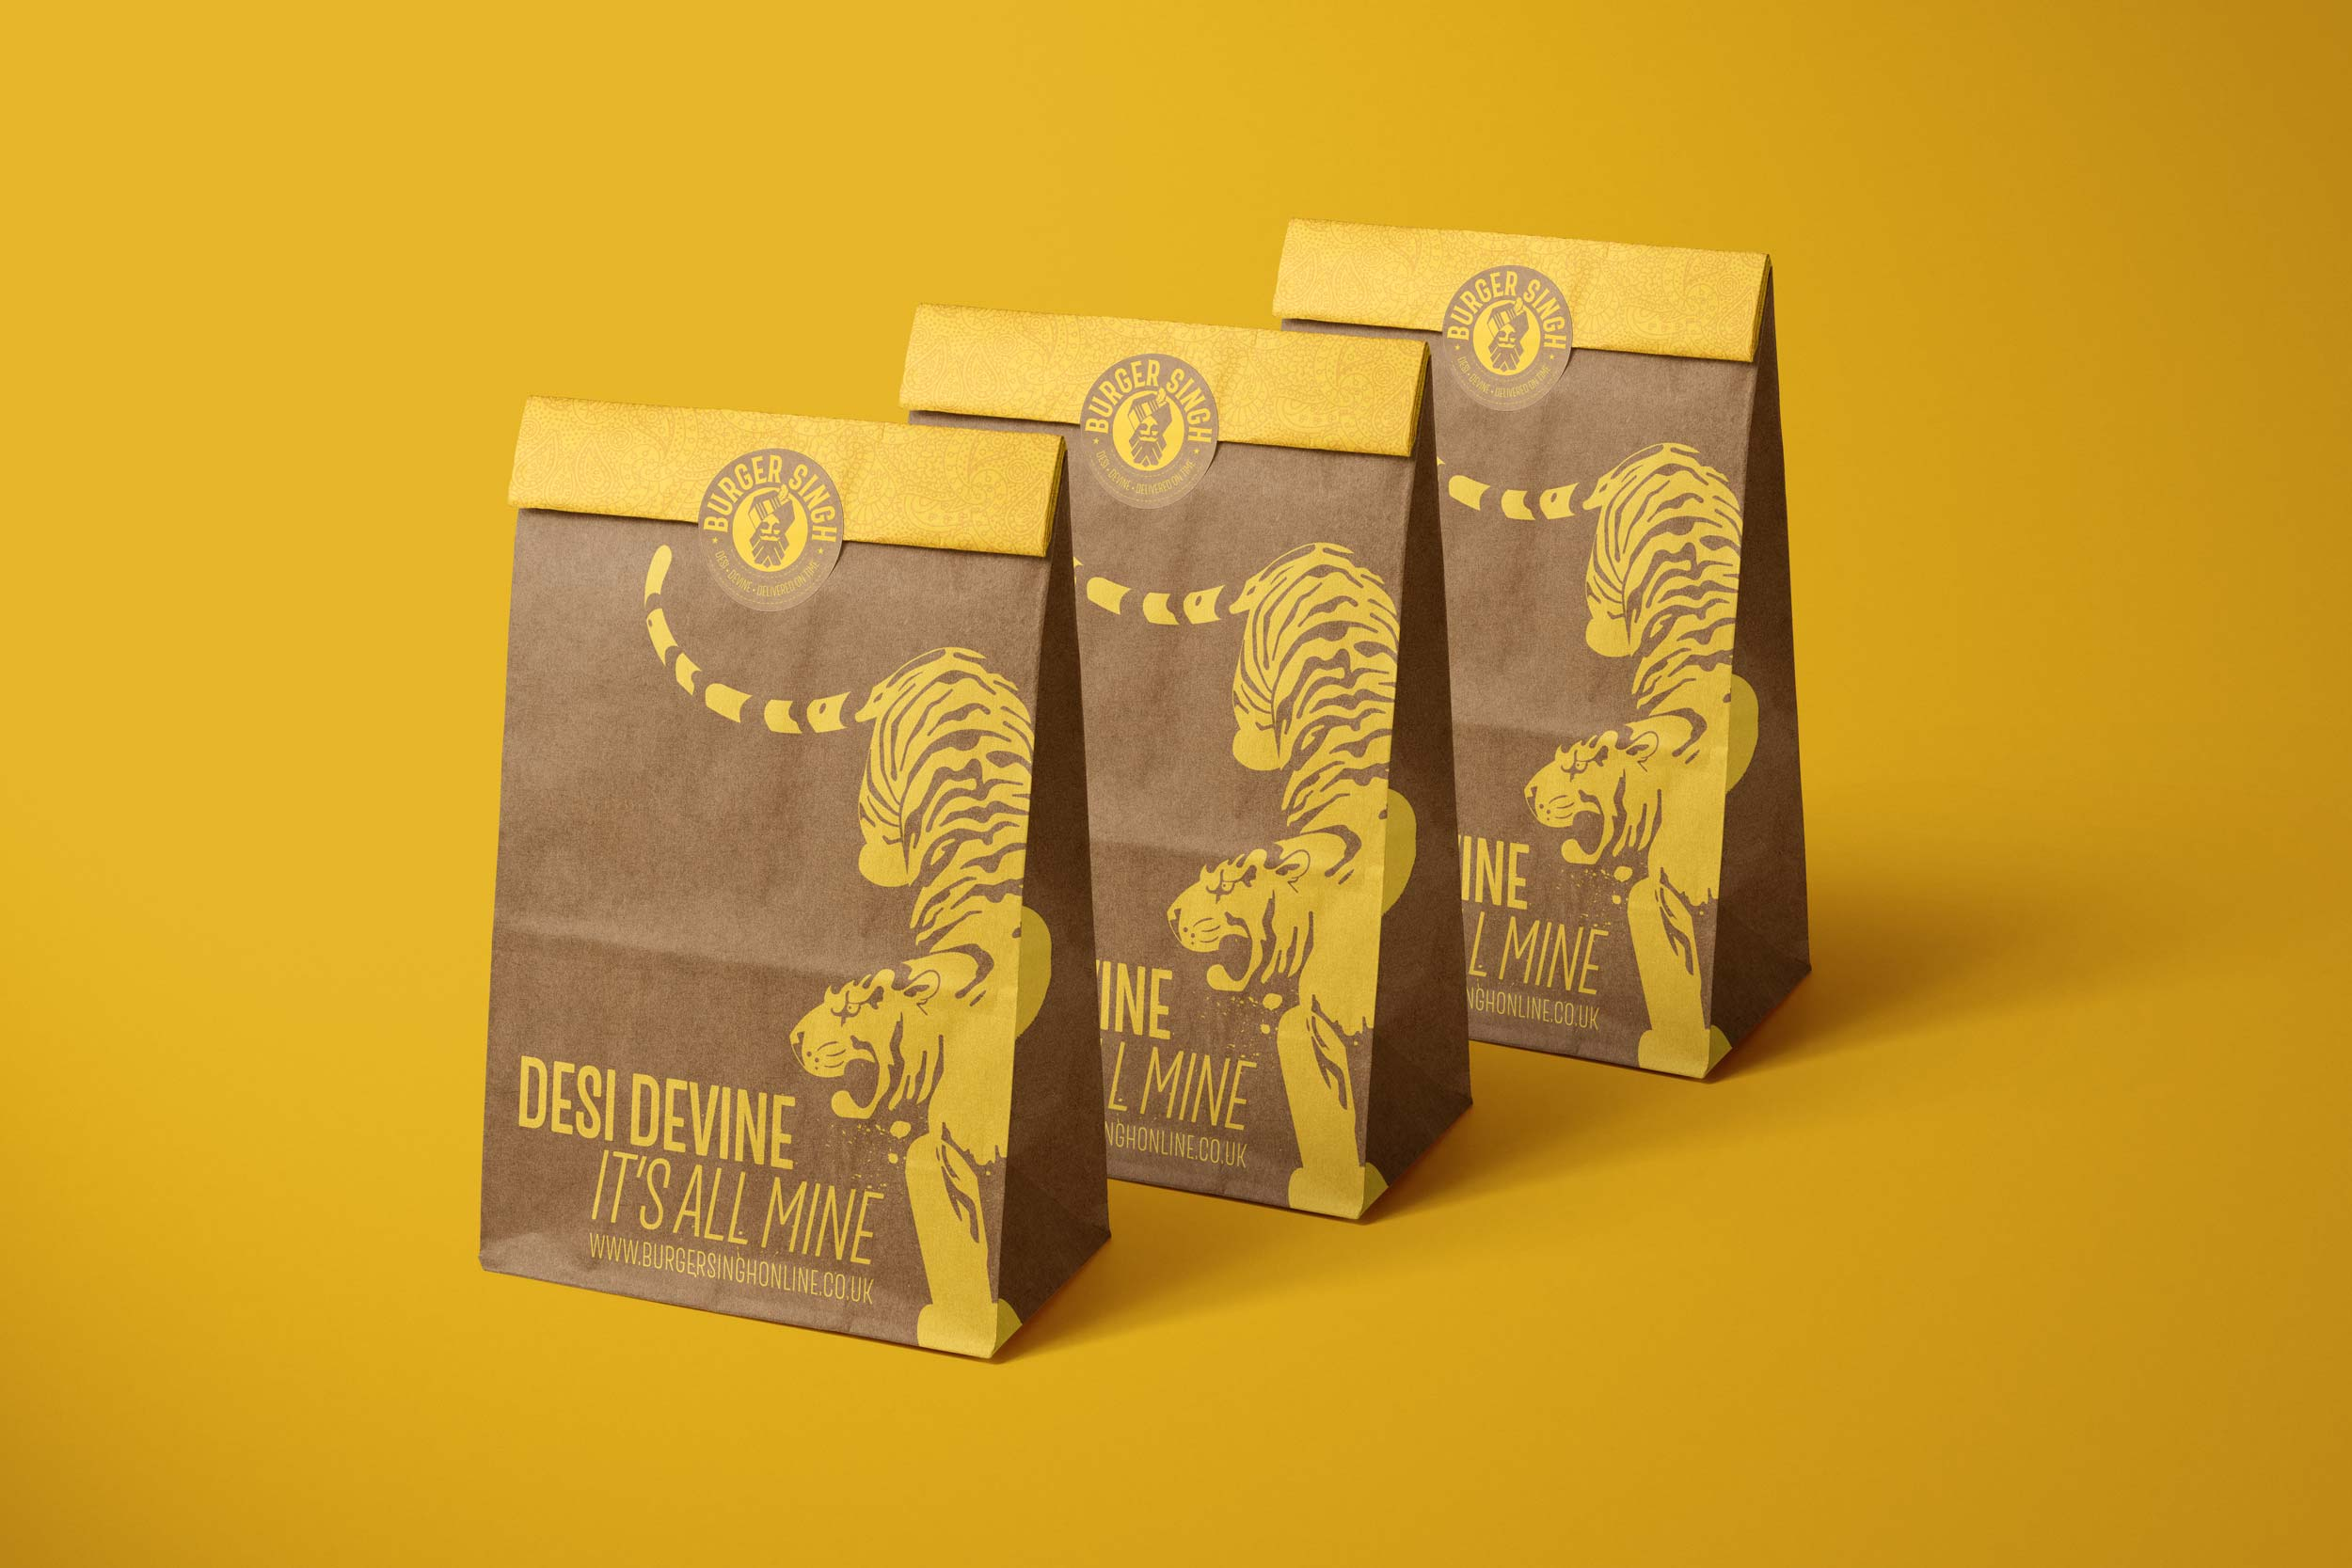 Burger Singh take-away bags with tiger illustration and logo. Heading Desi Divine, It's all mine.